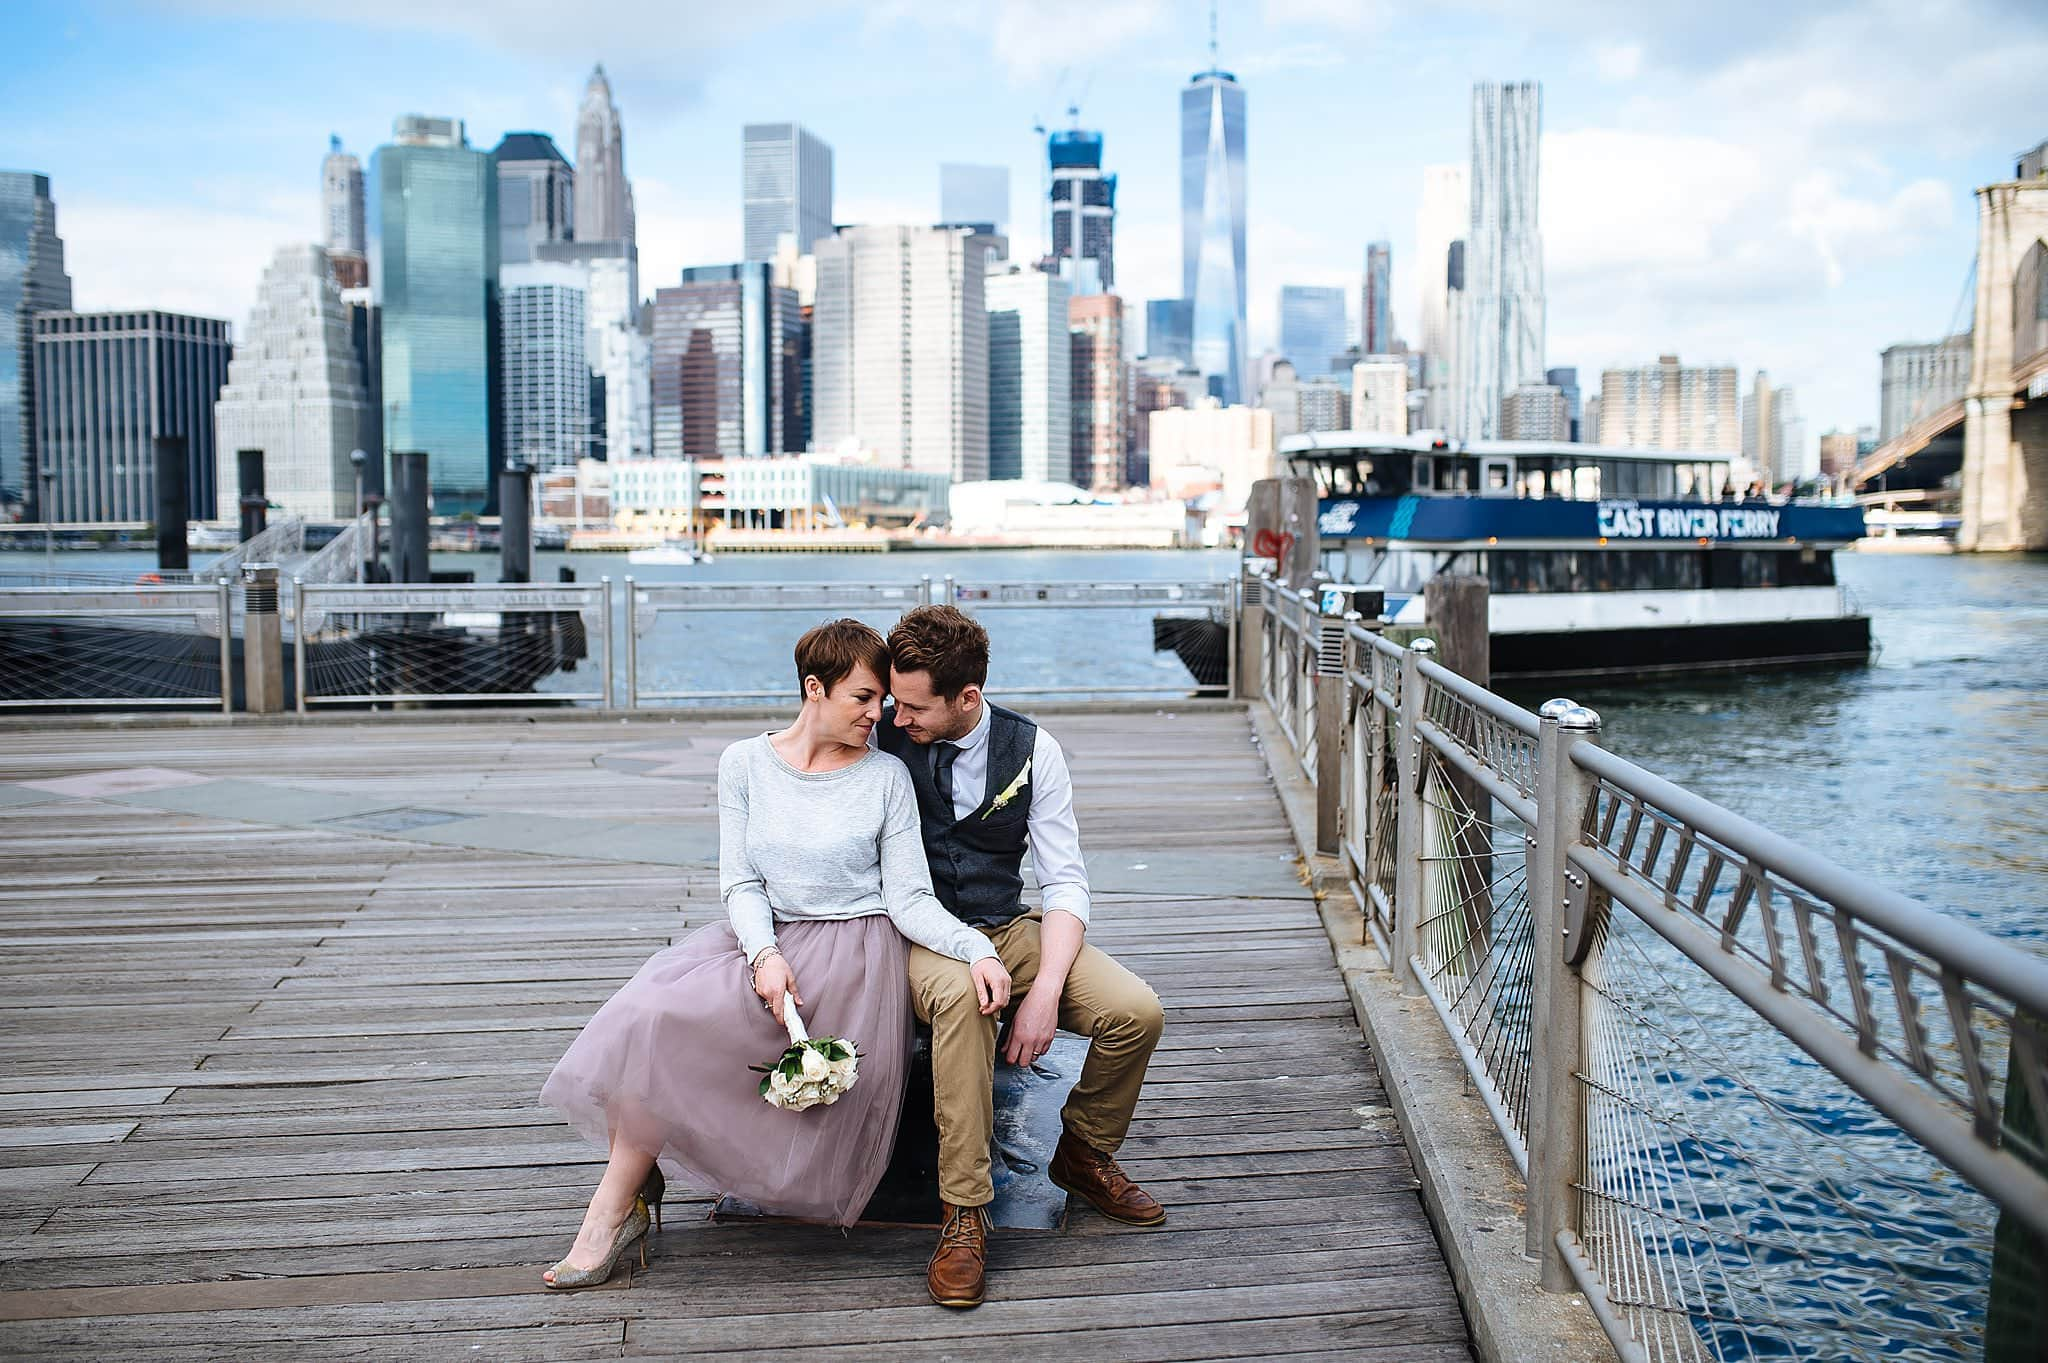 Explore the city for portraits when you elope